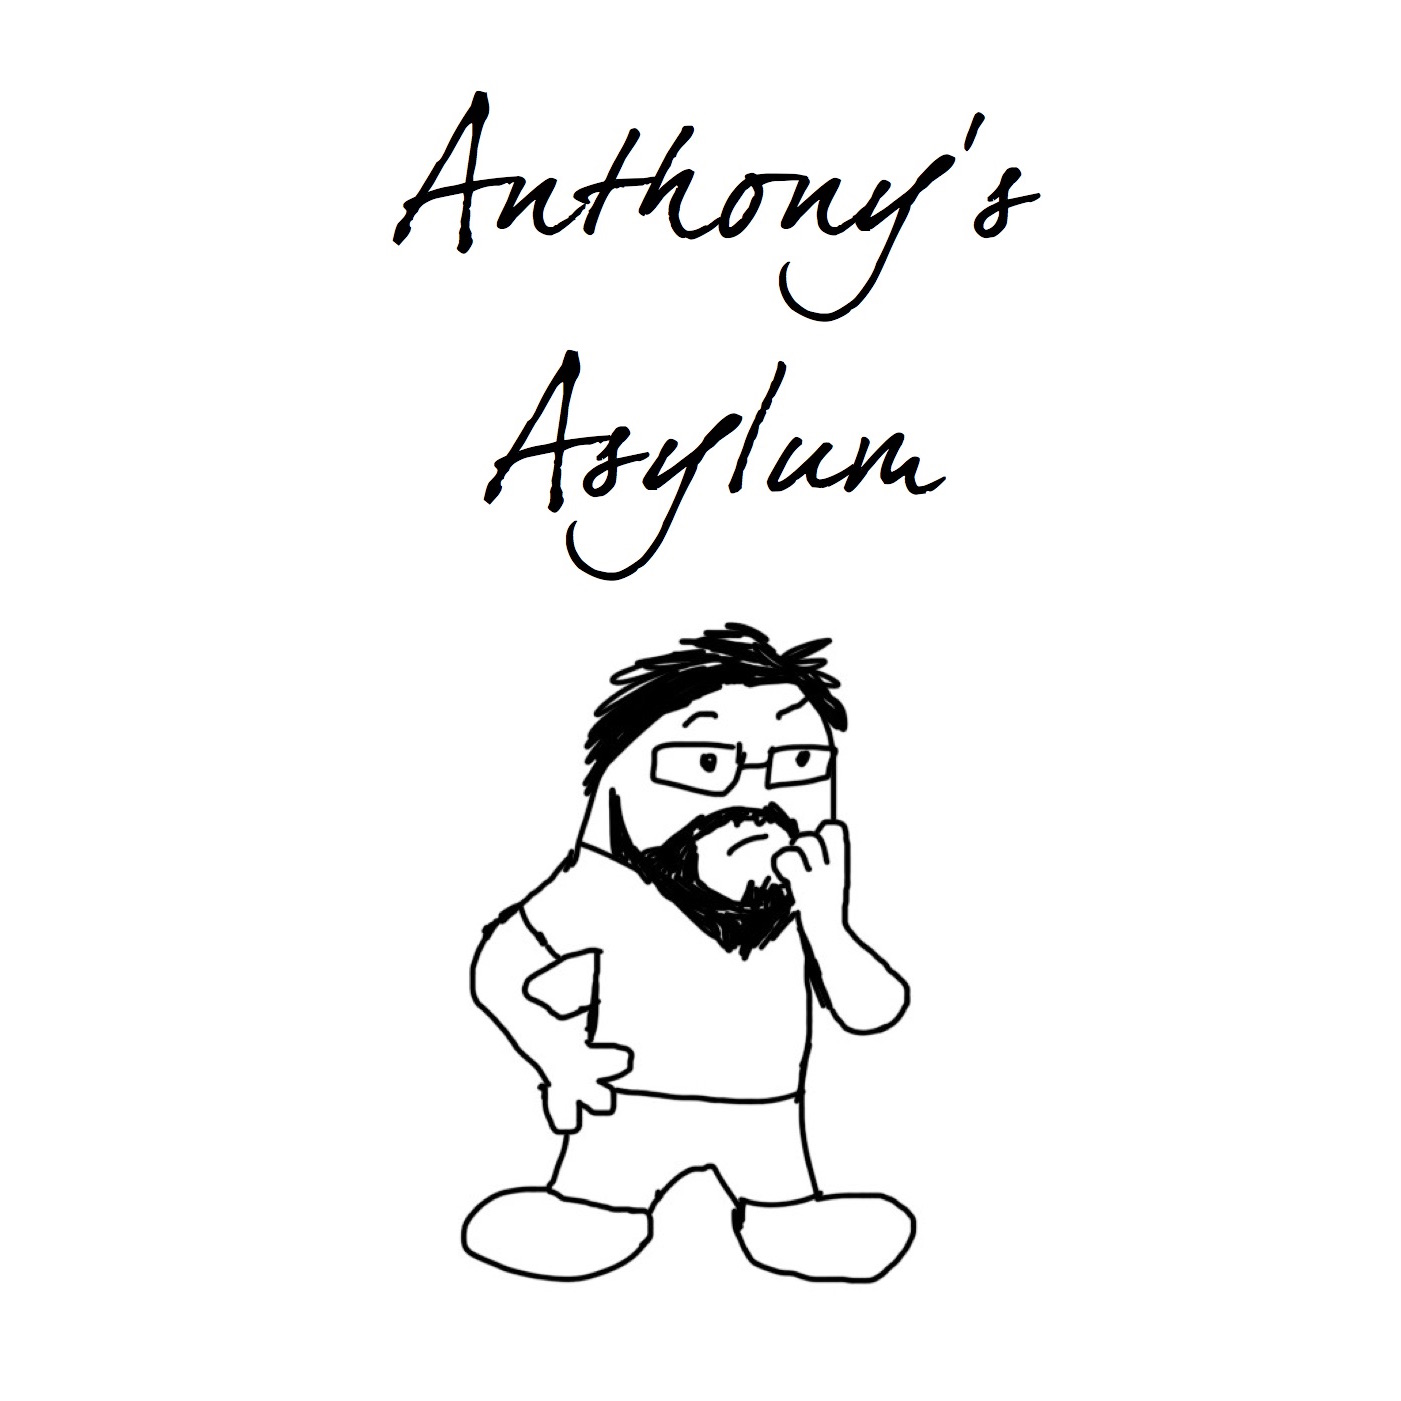 Anthony's Asylum